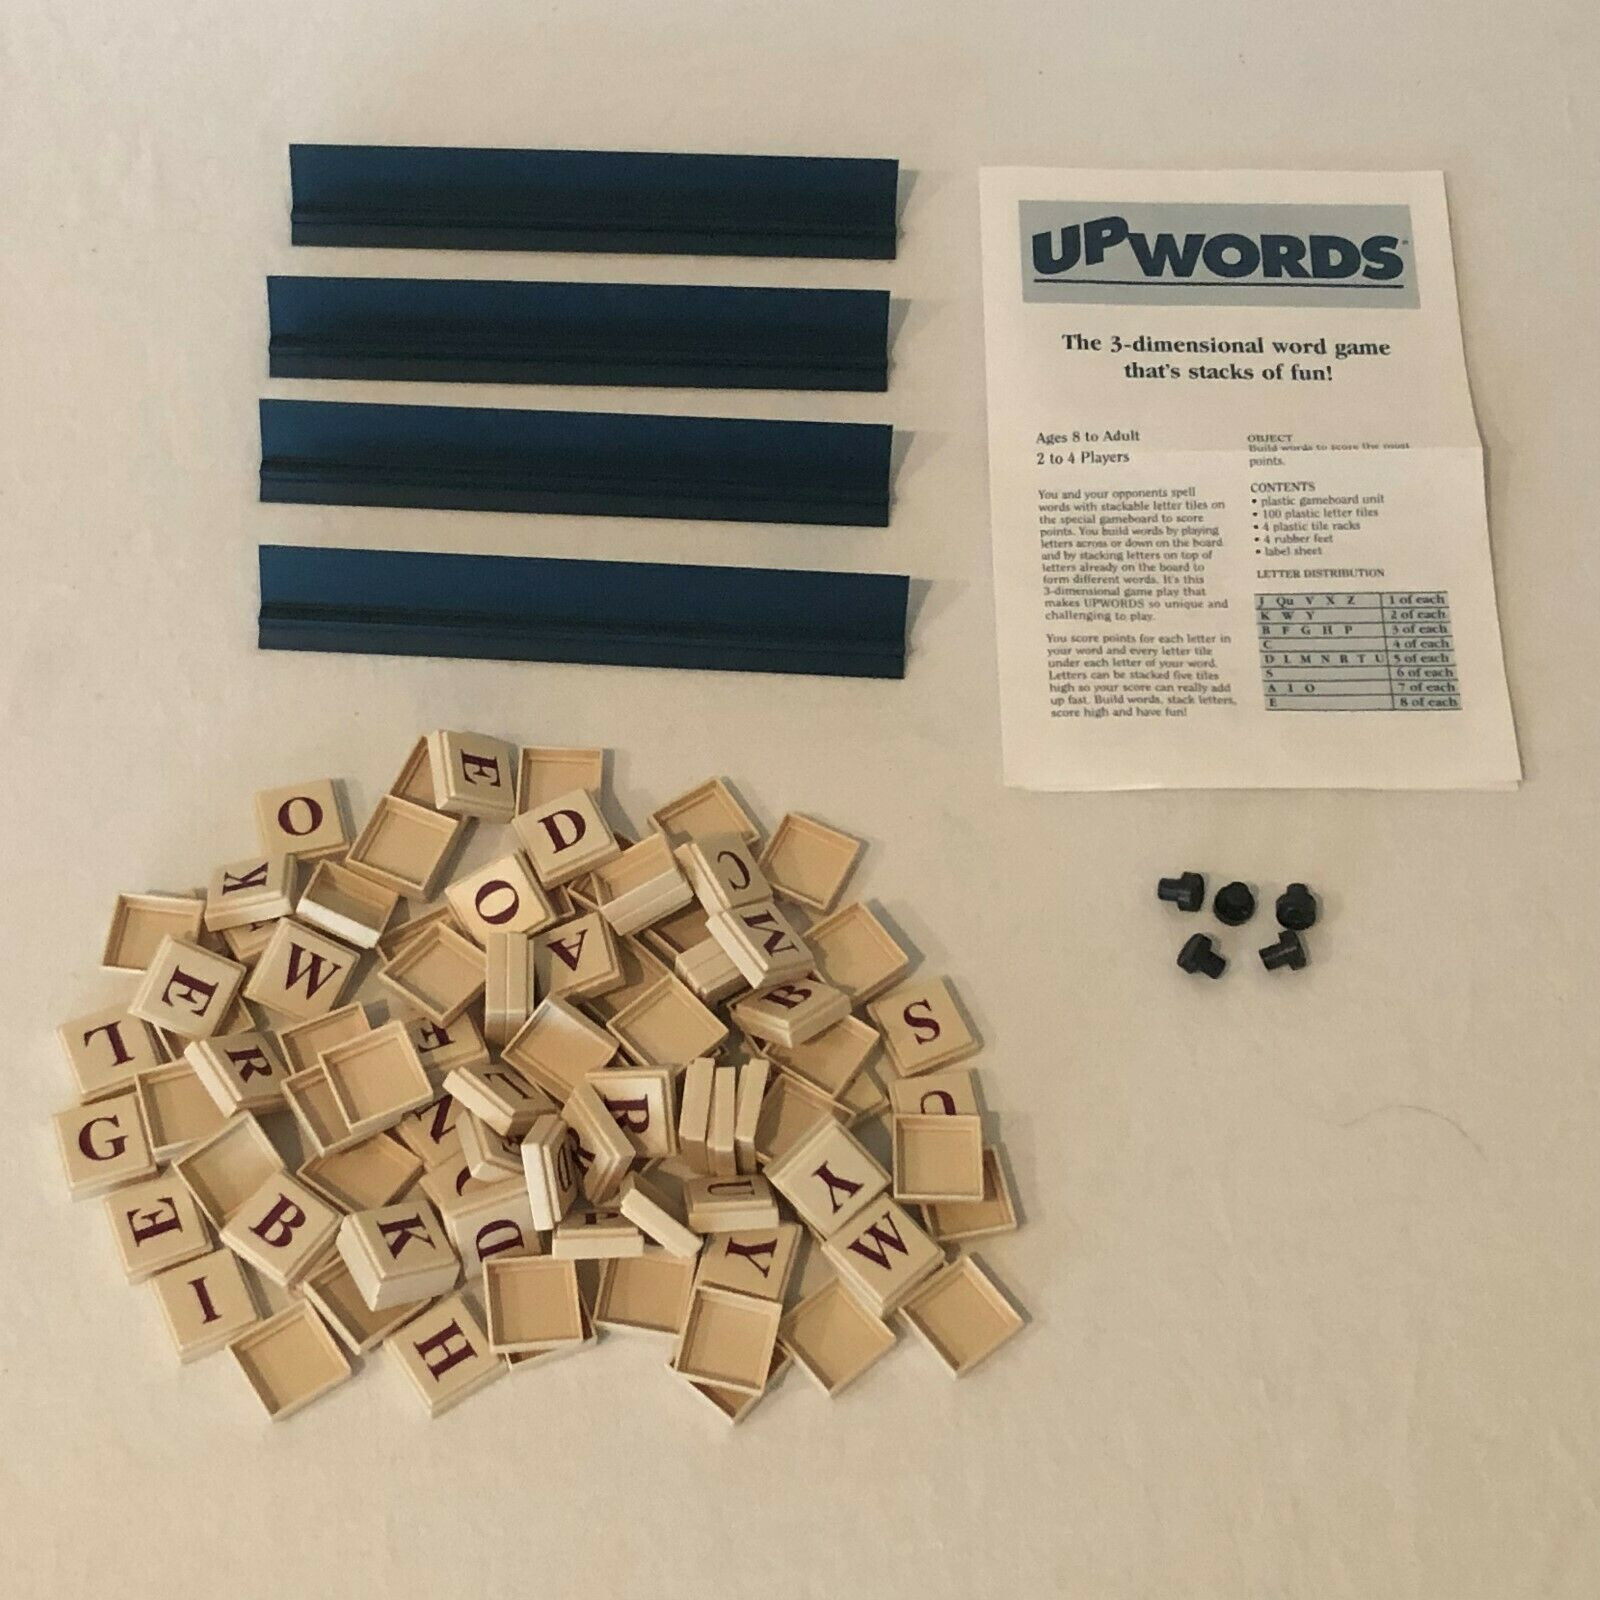 Primary image for UpWords Board Game Replacement Parts Pieces 100 Plastic Letter Tiles Rack Holder